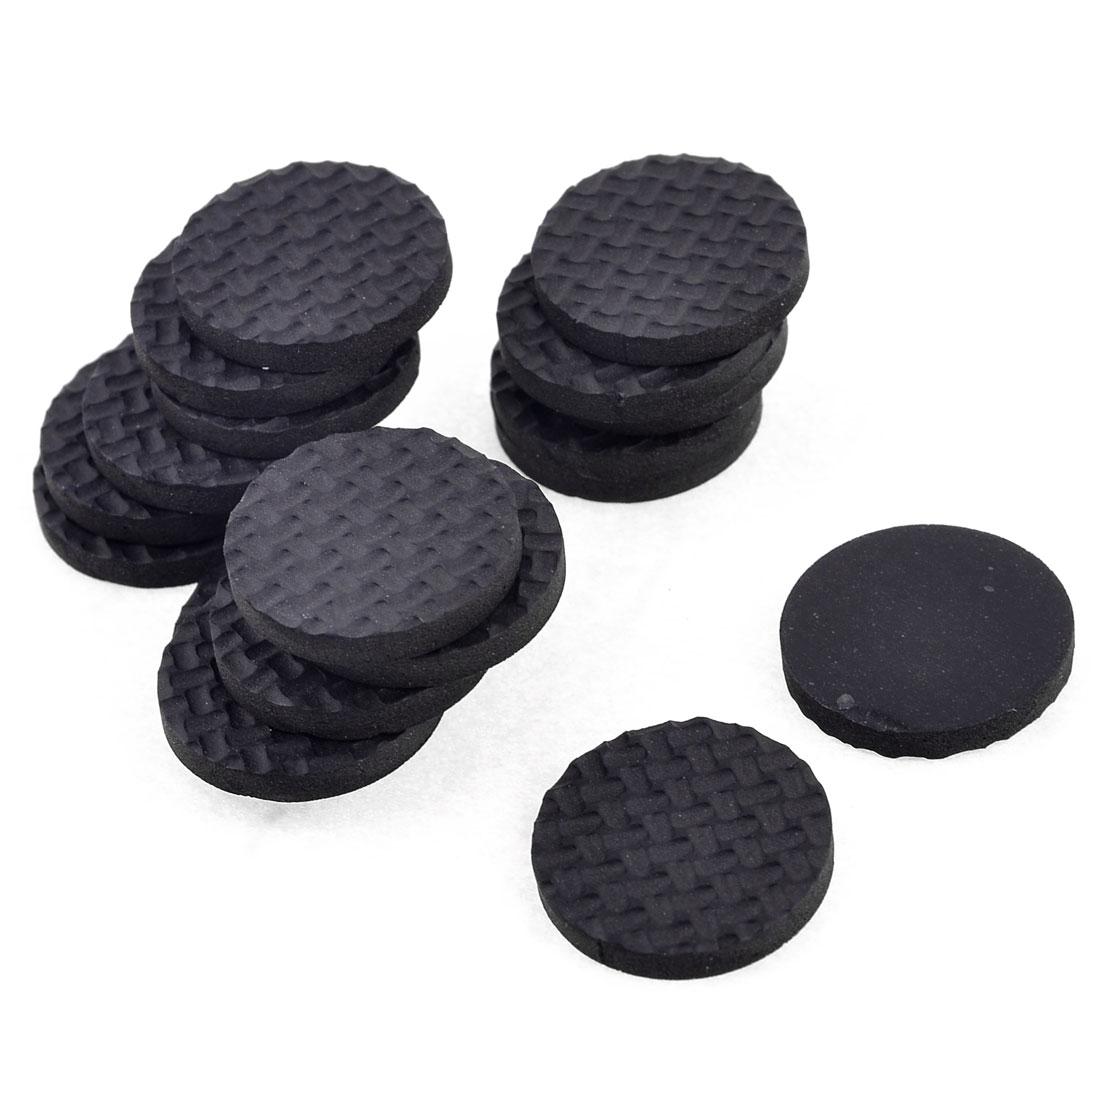 18 Pcs Tables Chairs Furniture Round Pad Protector 27mm x 2mm